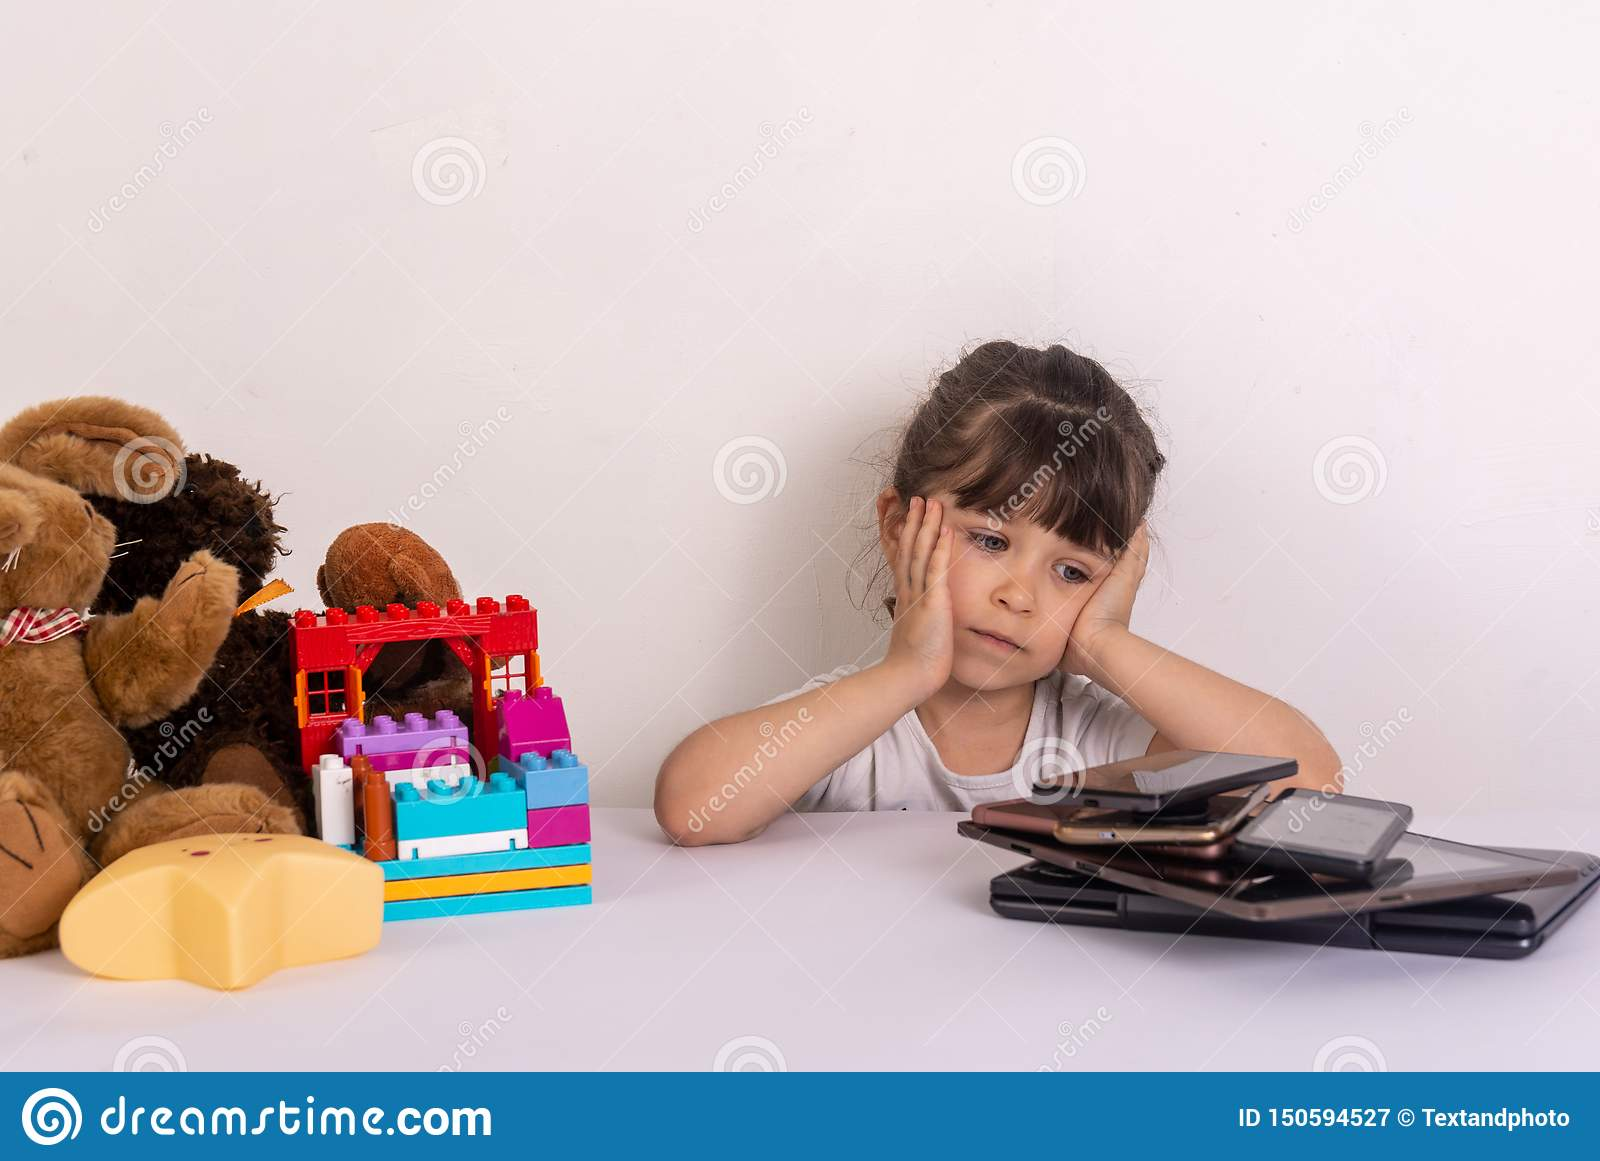 Kid tired because of too much information. Stressed little girl sitting near phones, smartphones, laptops, pc tablets.